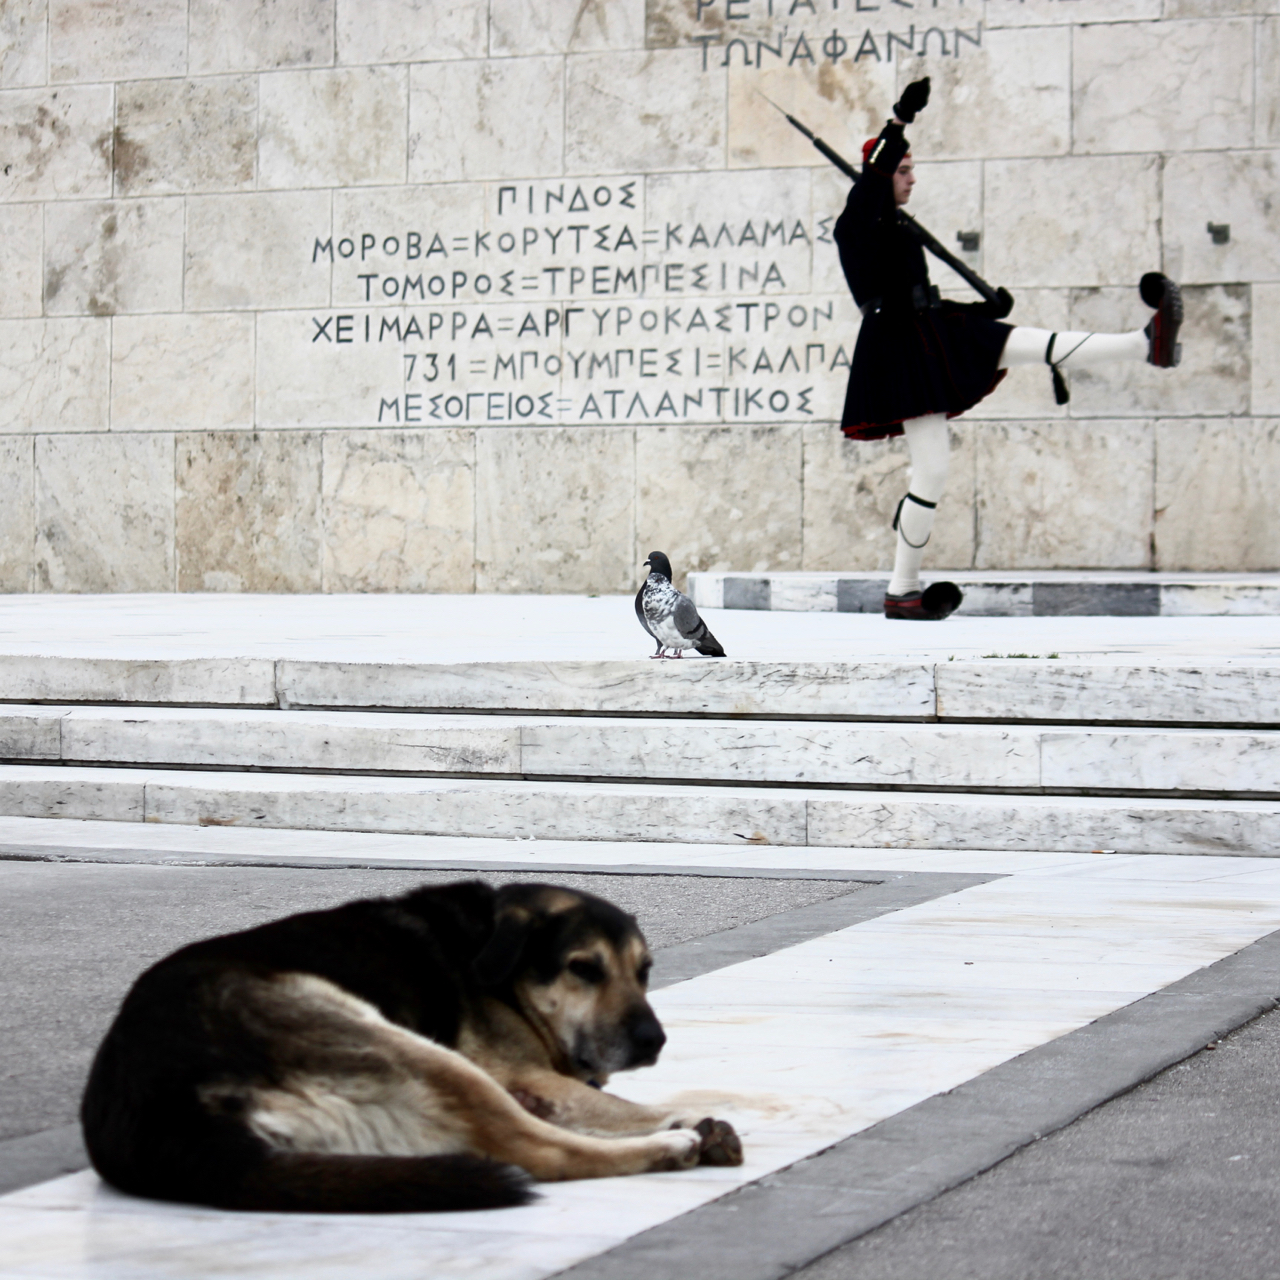 Athens, Greece - 27